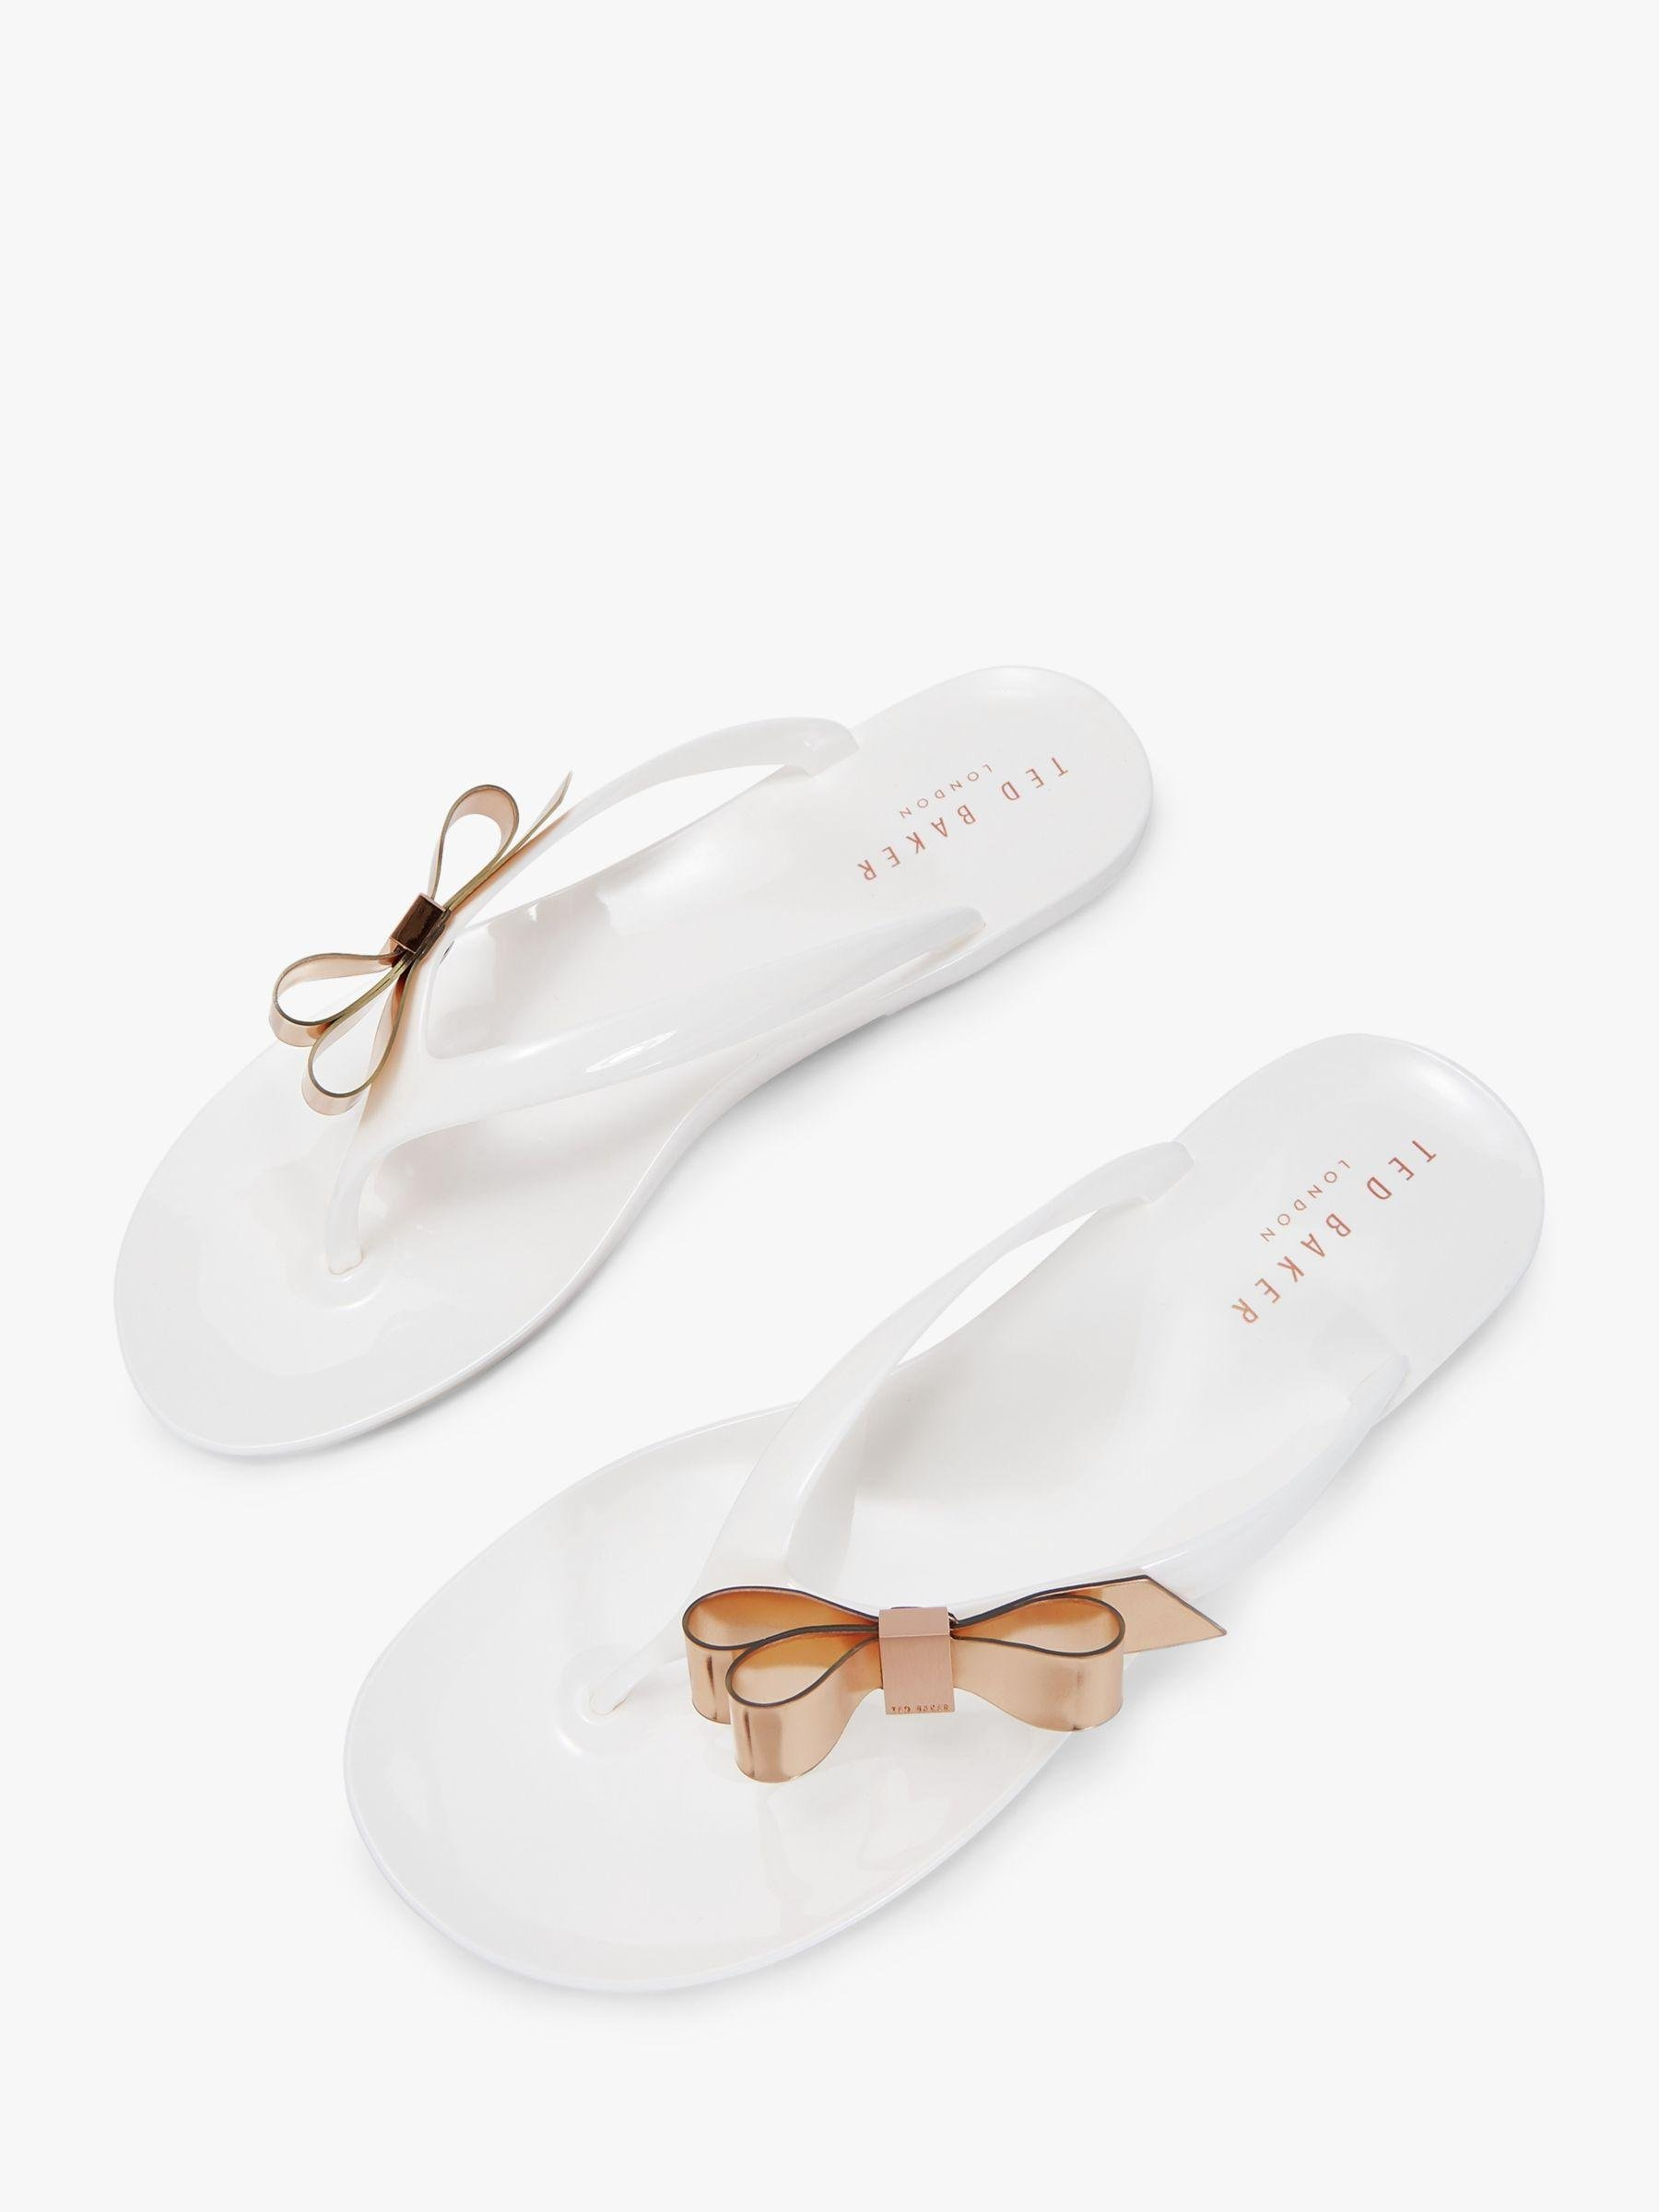 c13a18a9ddf2 Ted Baker Bow Detail Jelly Flip Flops in White - Lyst